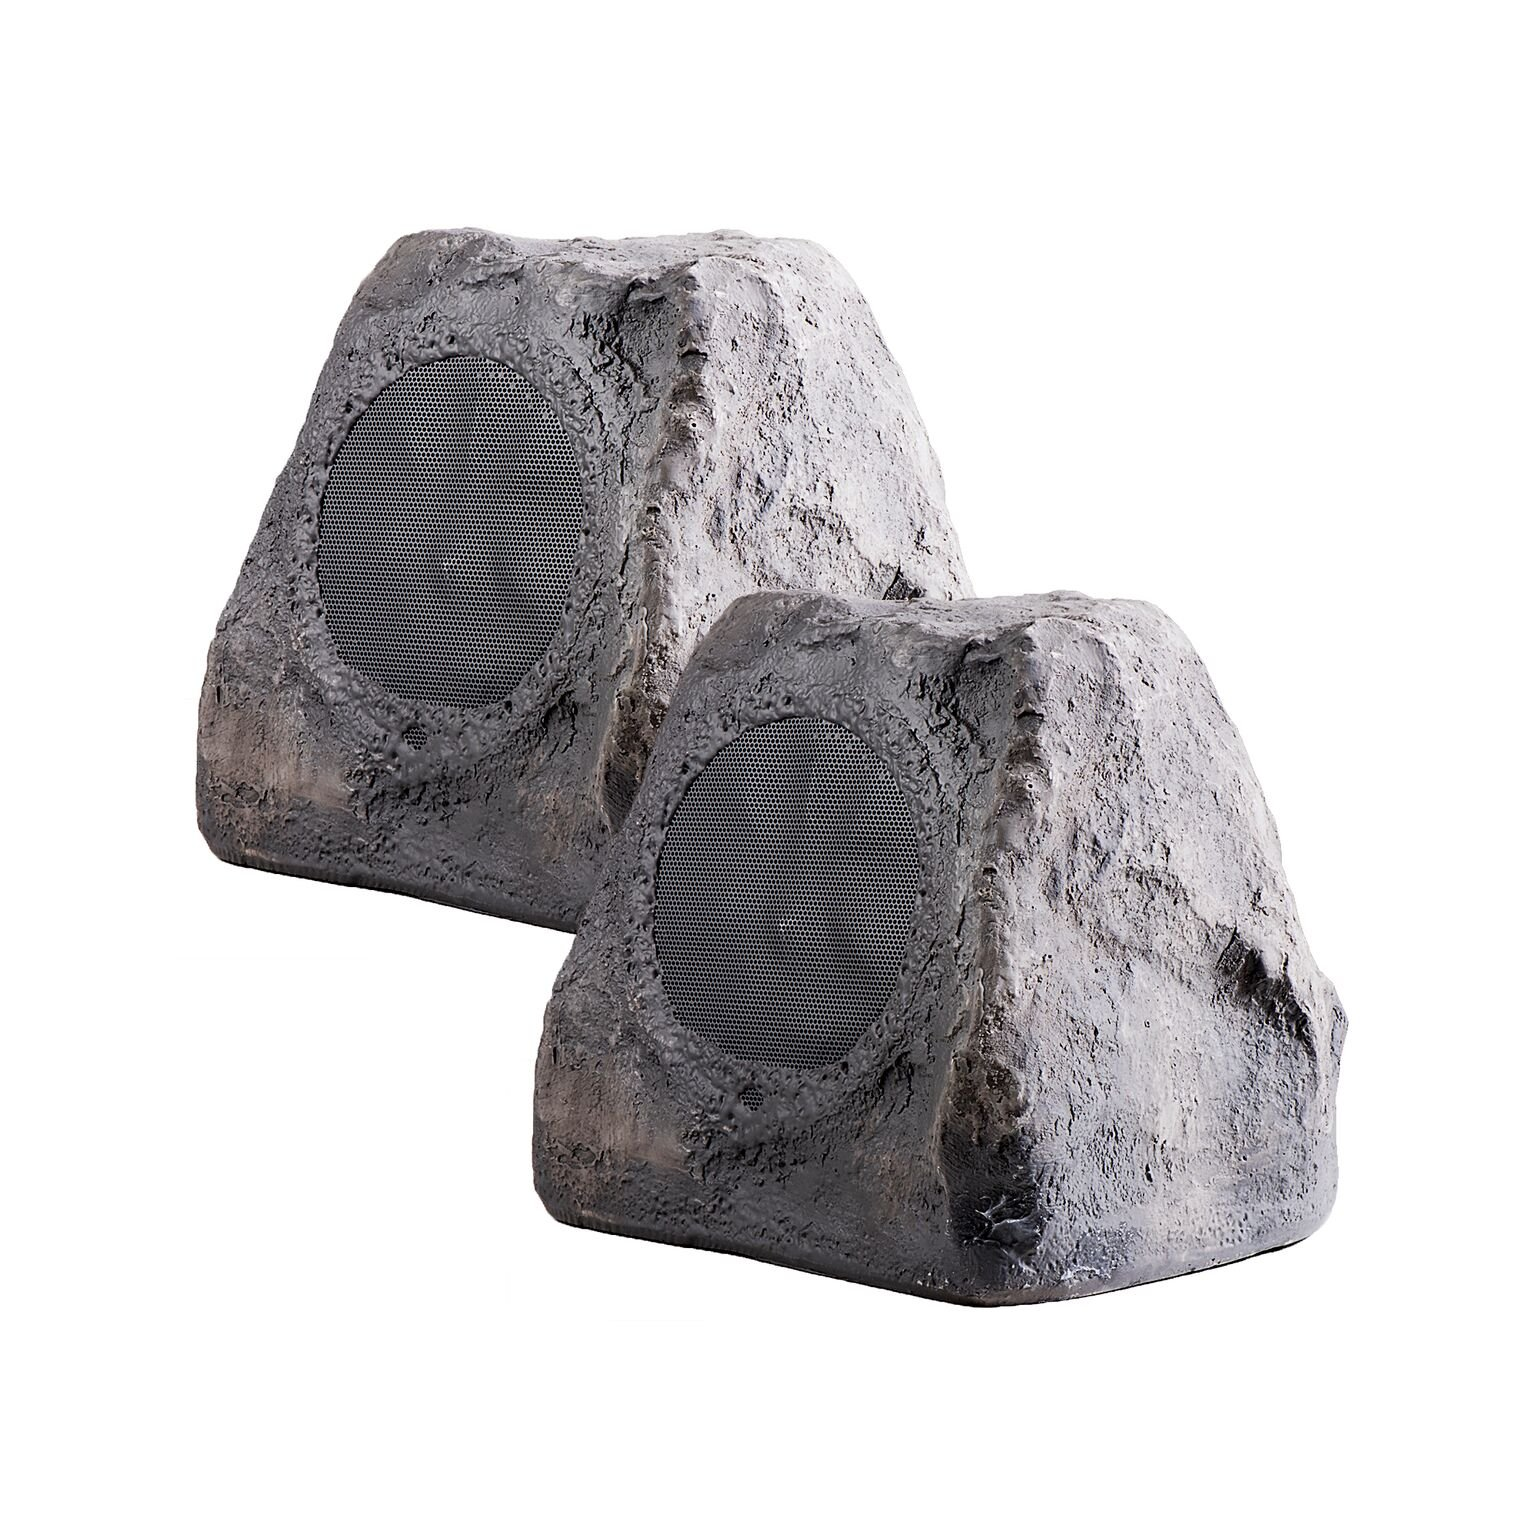 OSD Audio 5.25'' 100W Outdoor Rock Speaker Pair - Weather Resistant Stereo - RX550Slate by OSD Audio